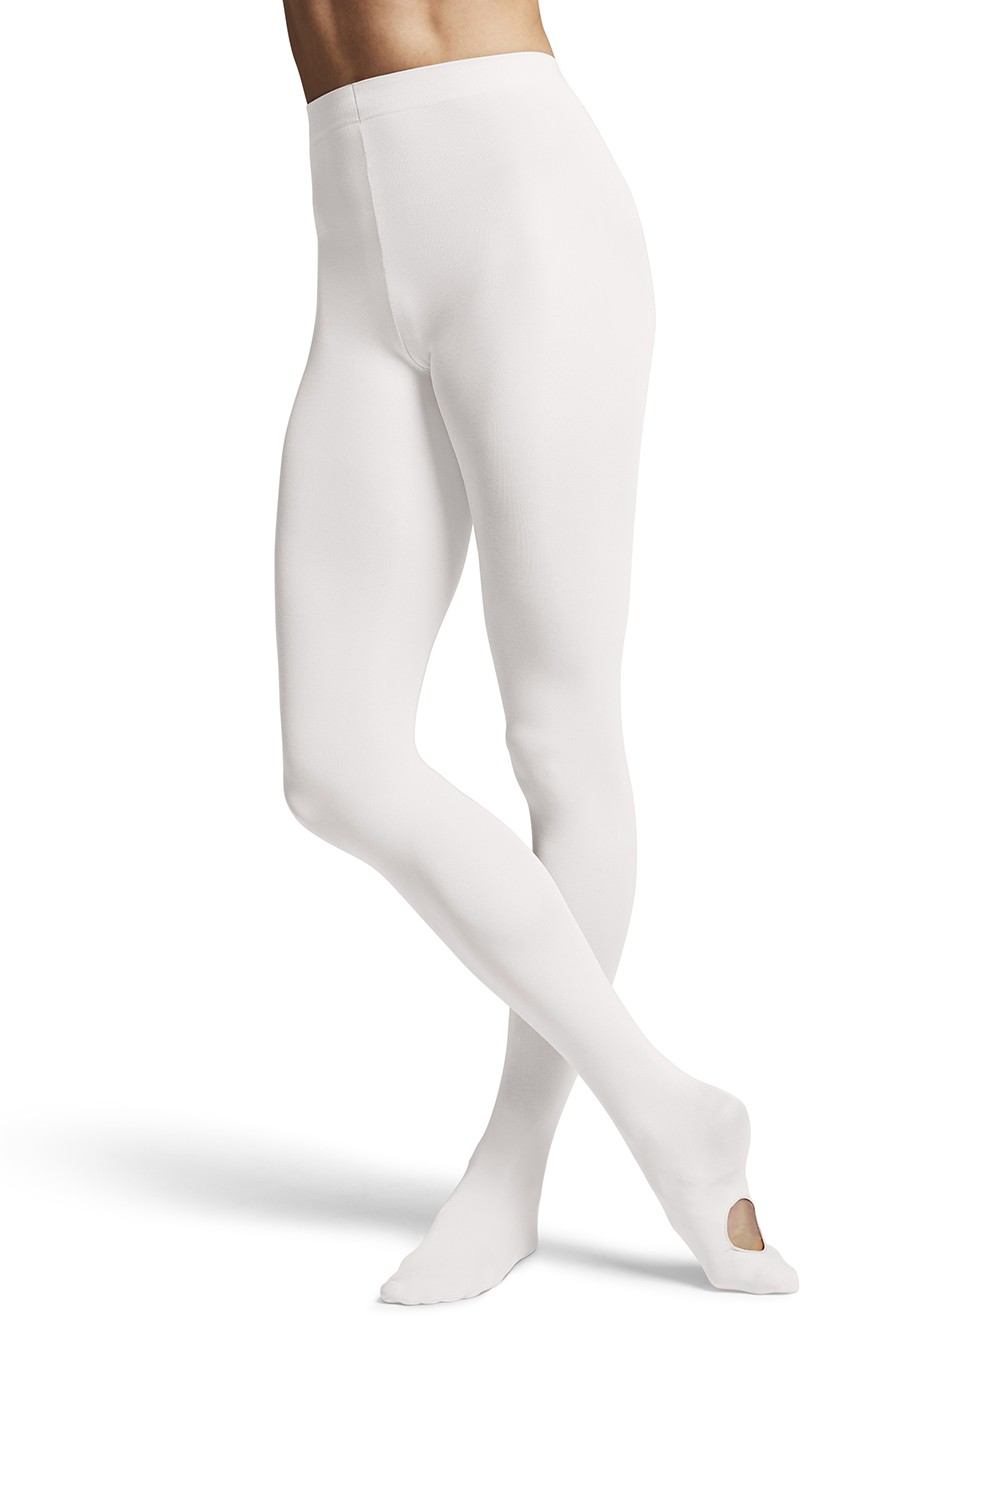 Girls Contoursoft Children's Dance Tights